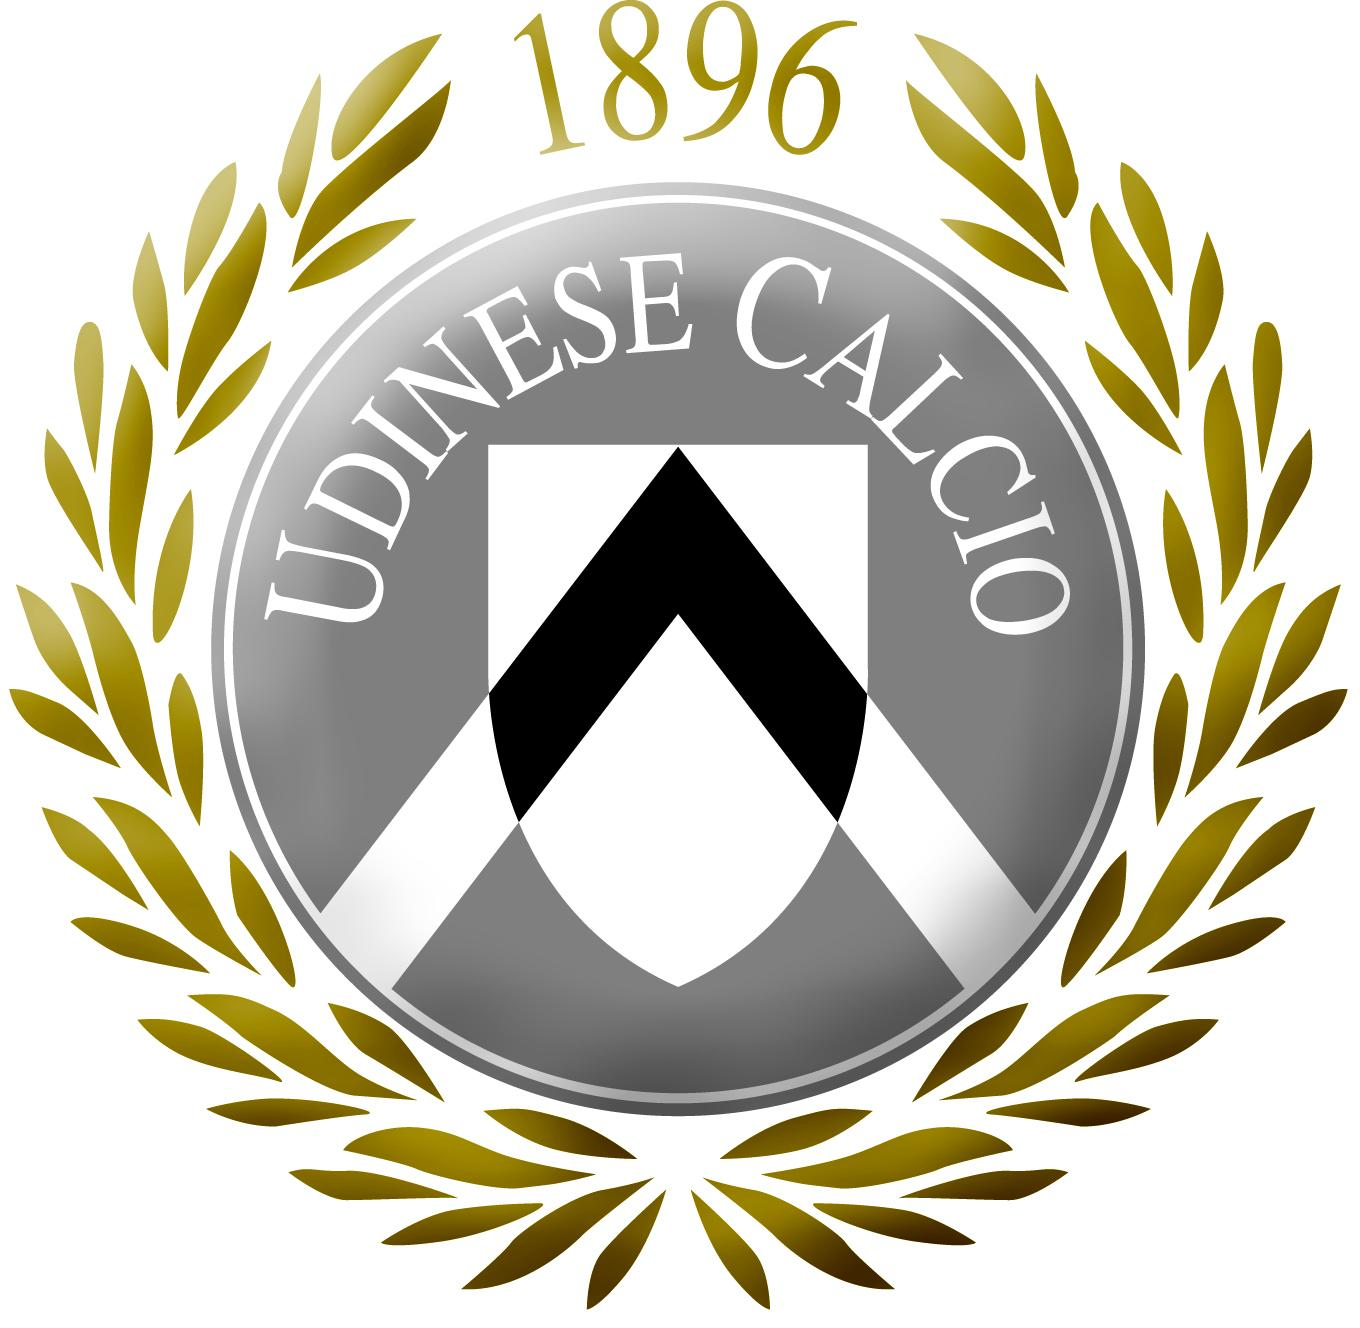 Udinese Calcio Logo 3D Wallpaper